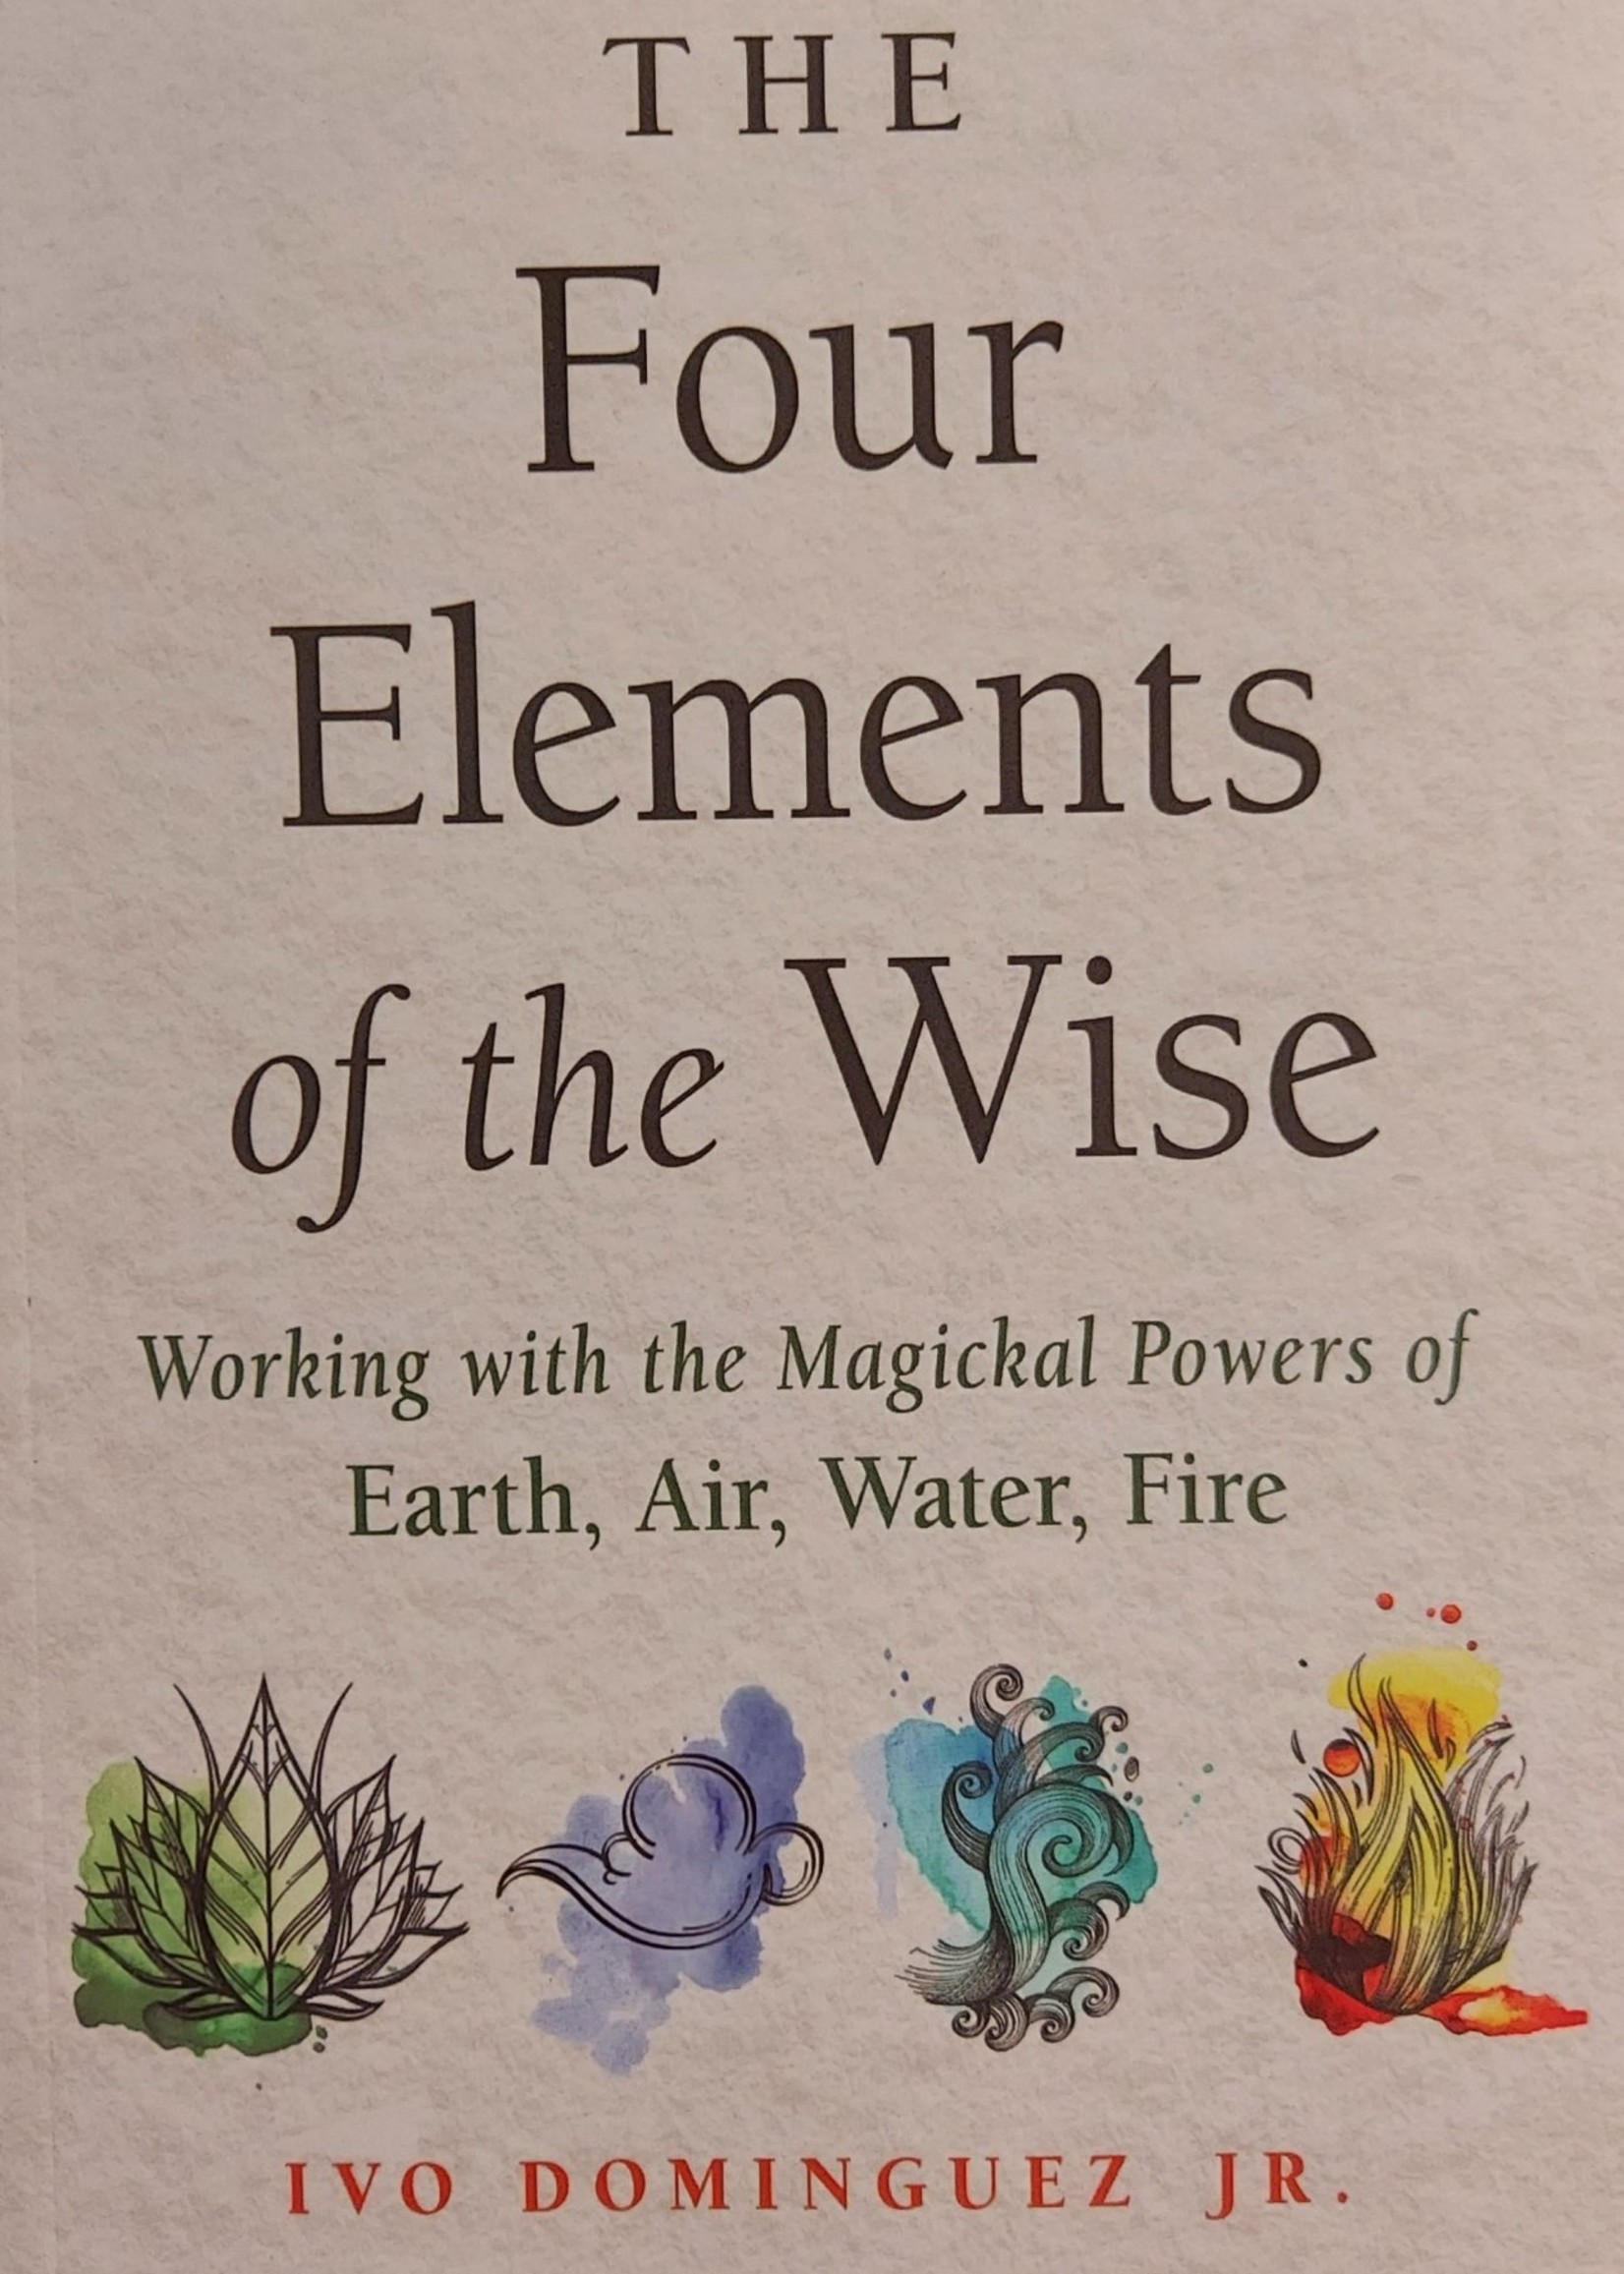 The Four Elements of the Wise-Author Ivo Dominguez, Jr., Foreword Courtney Weber